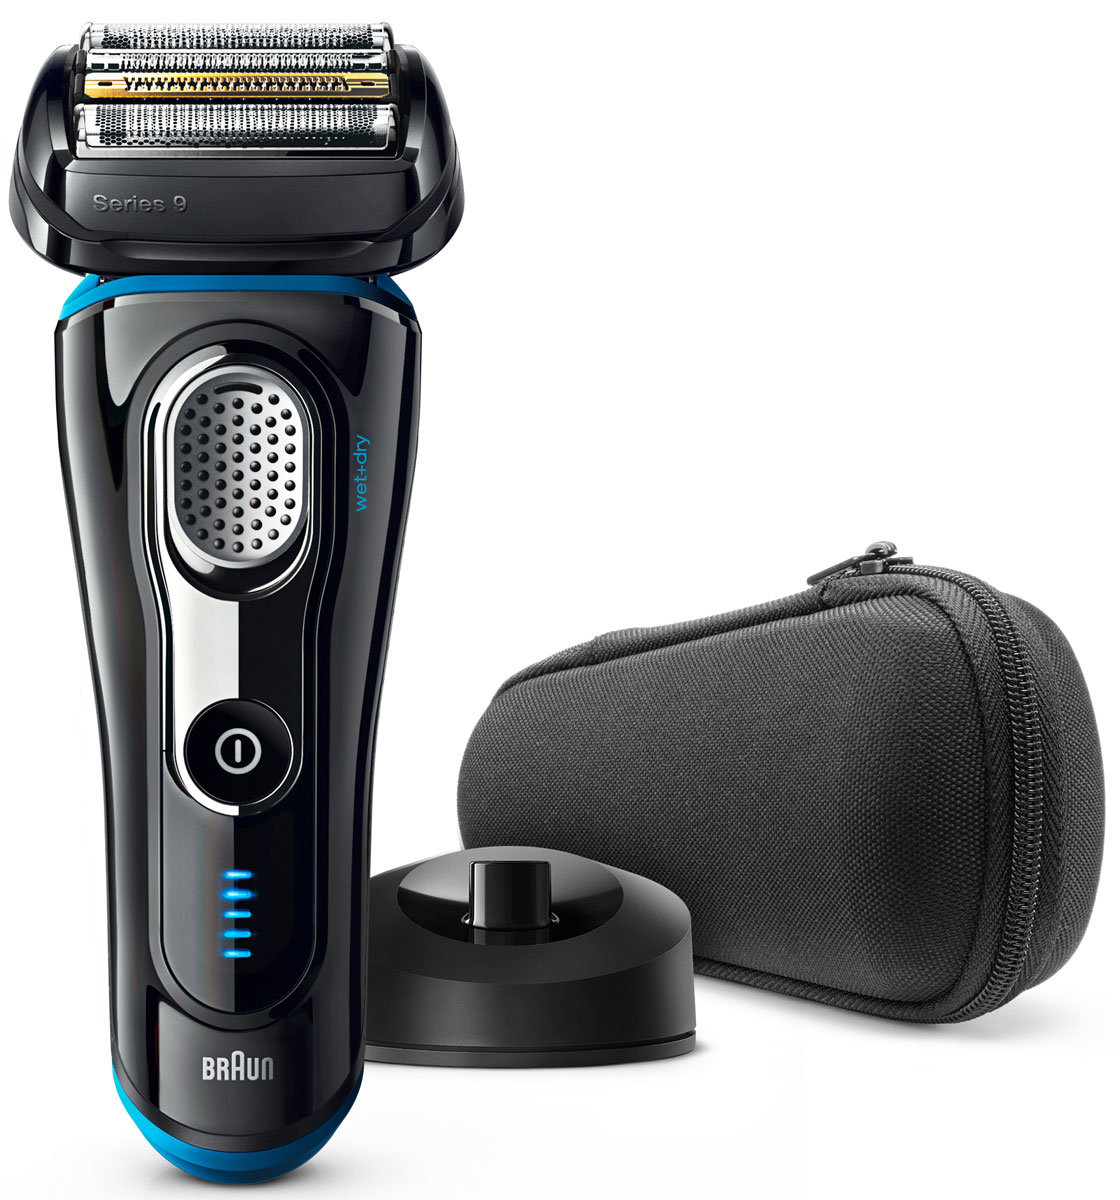 Braun Series 9 9240s Wet&Dry, Black электробритва электробритва braun series 7 799cc wet & dry